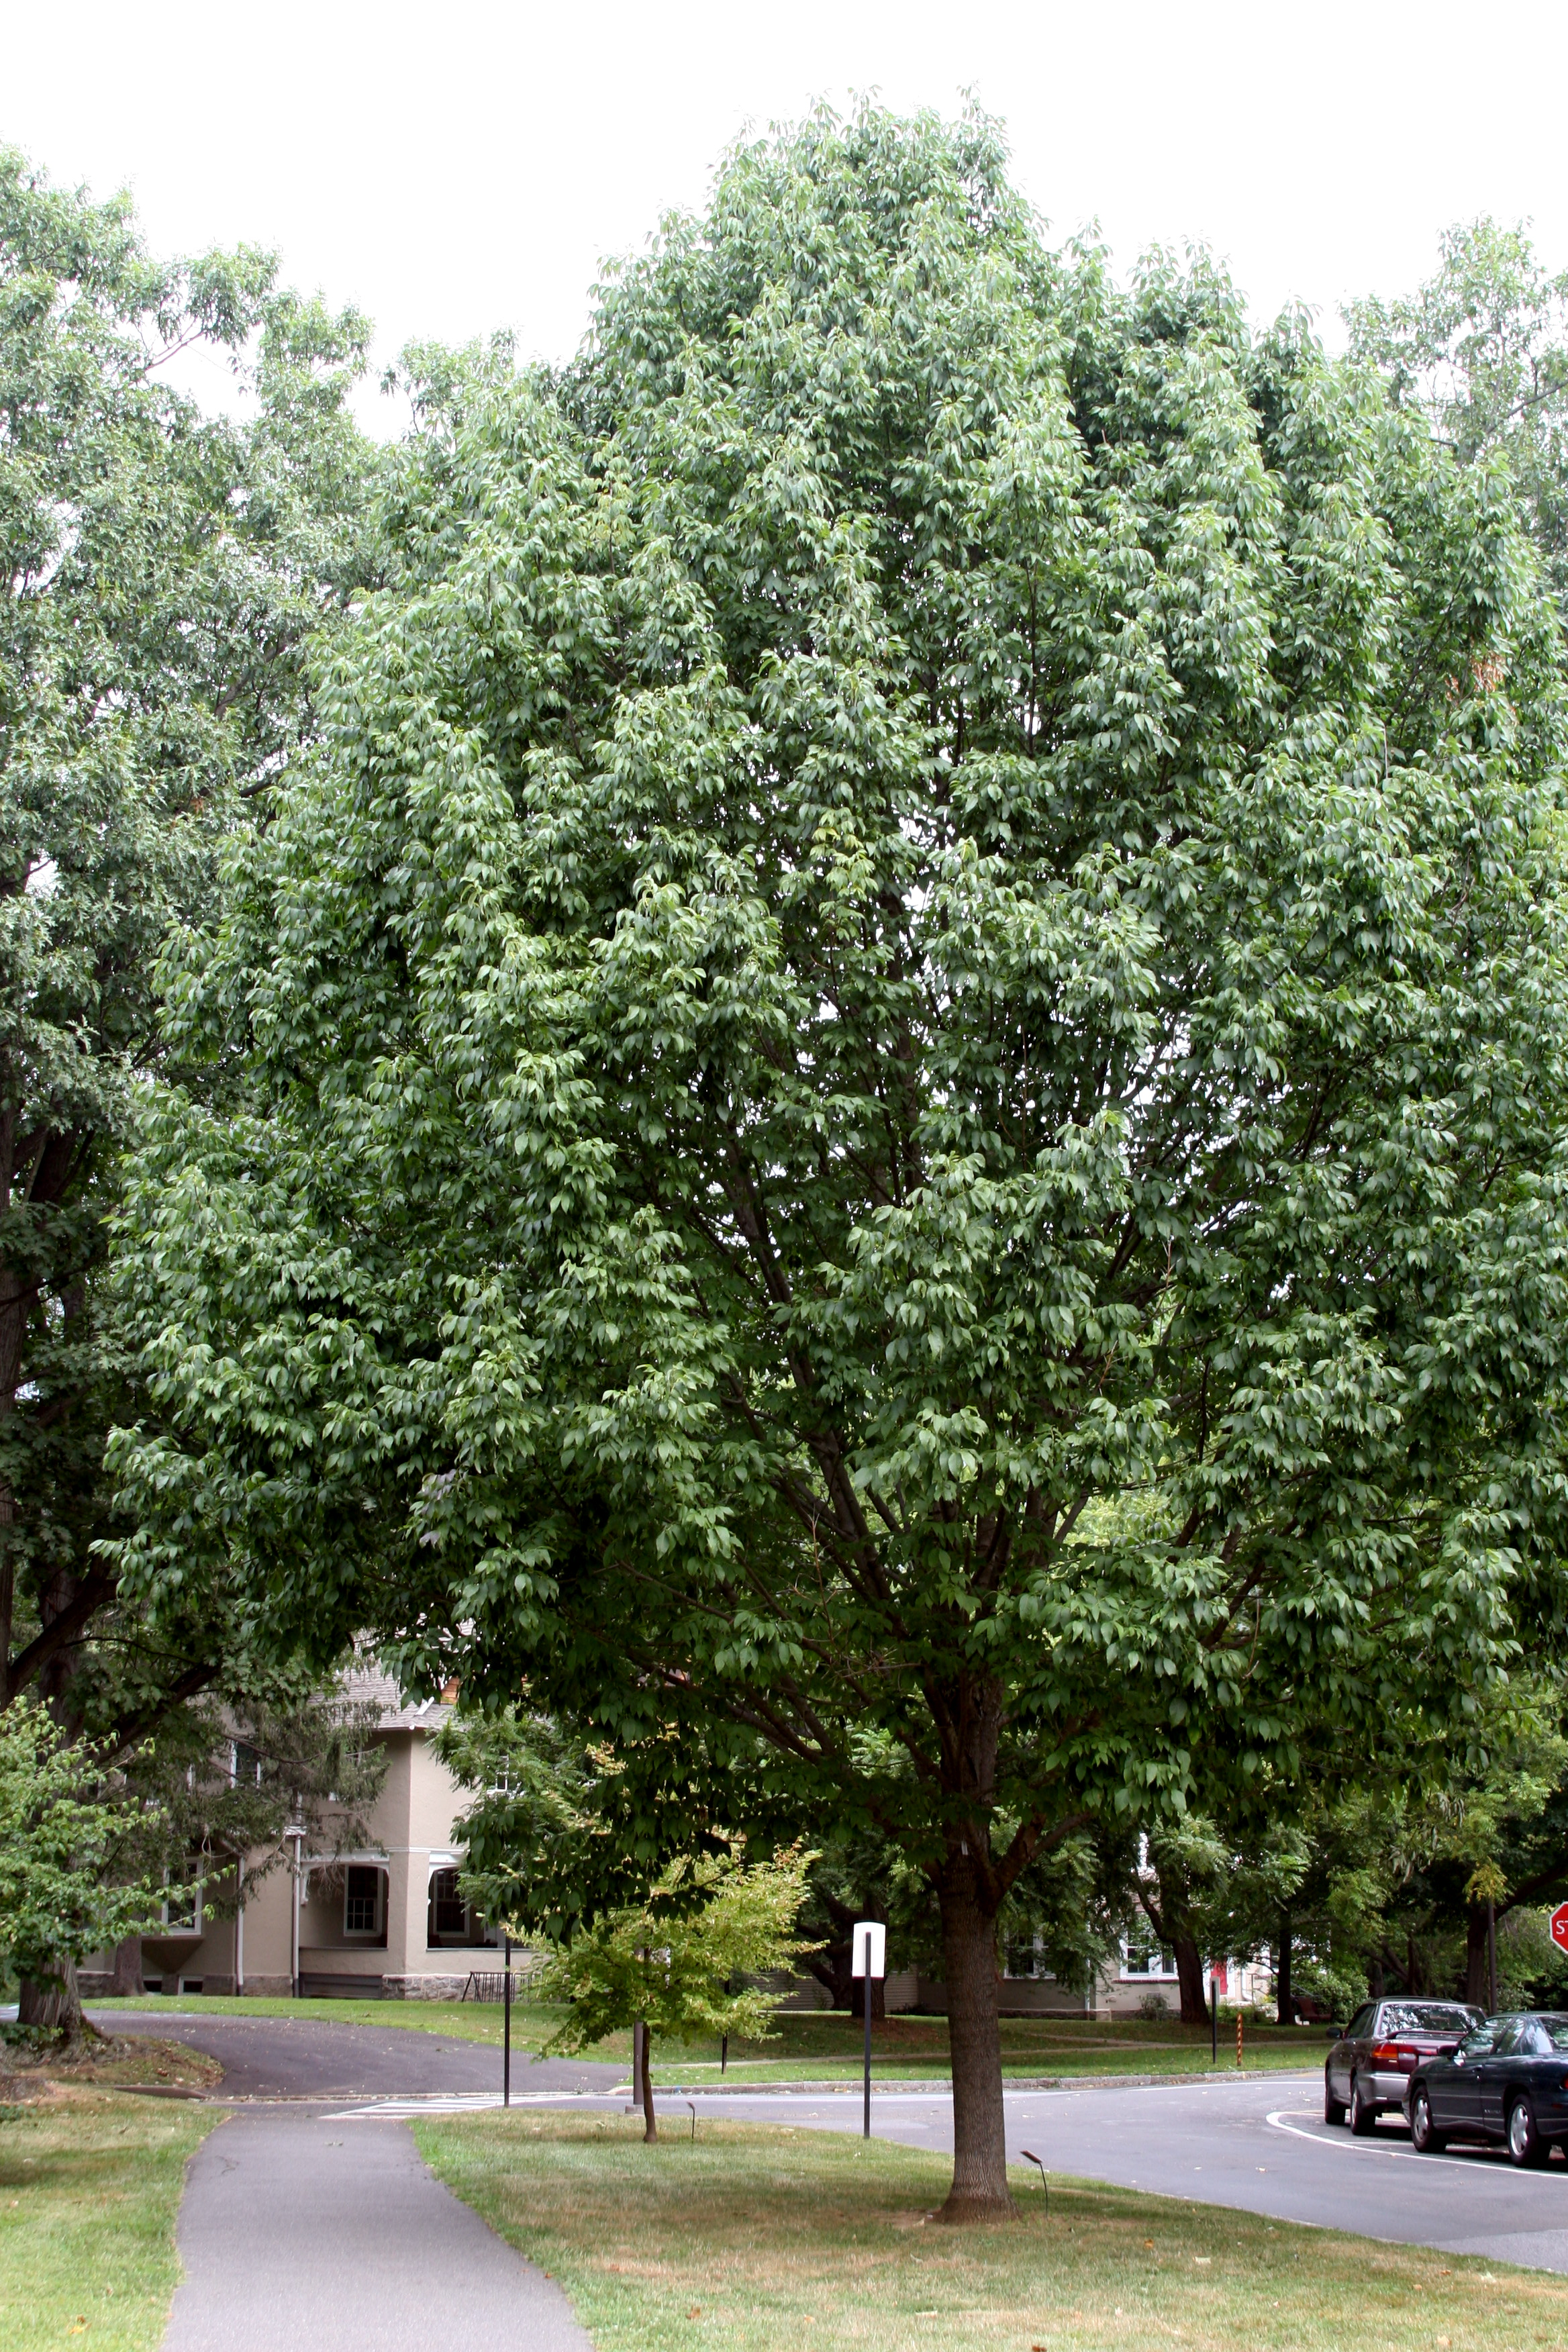 Fraxinus americana'Greenspire' at the Scott Arboretum